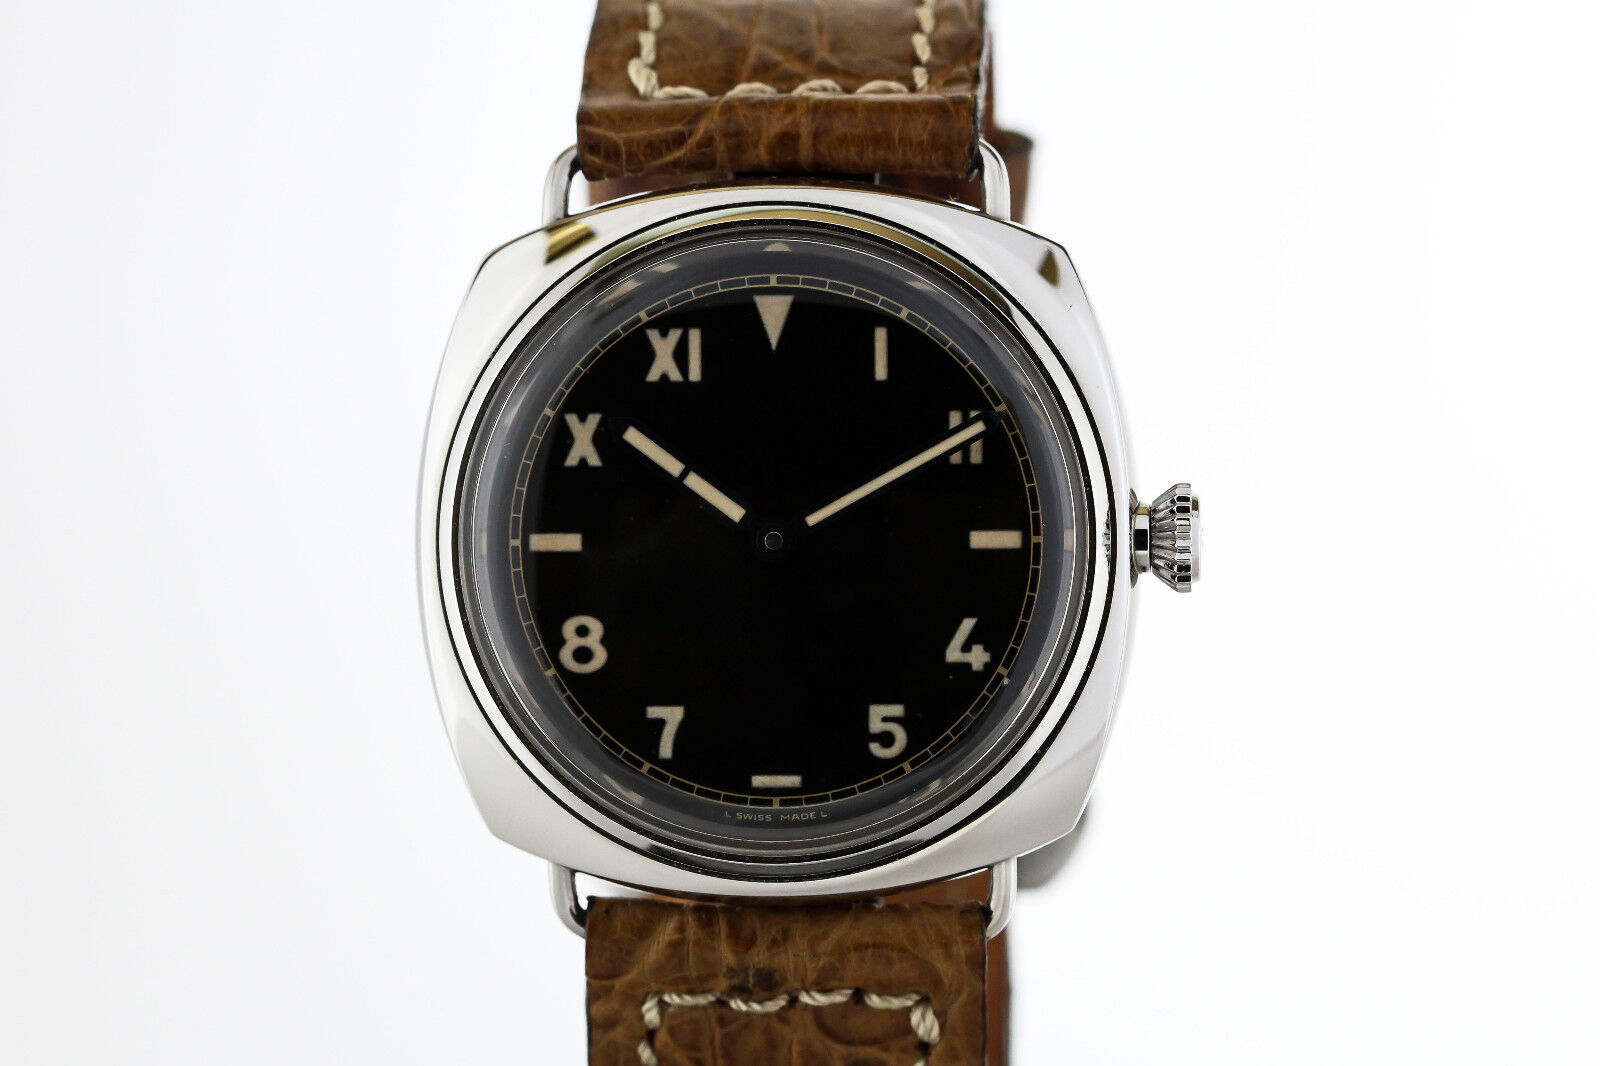 Panerai Radiomir 1936 California Dial PAM 249 47mm Limited Edition Watch - watch picture 1